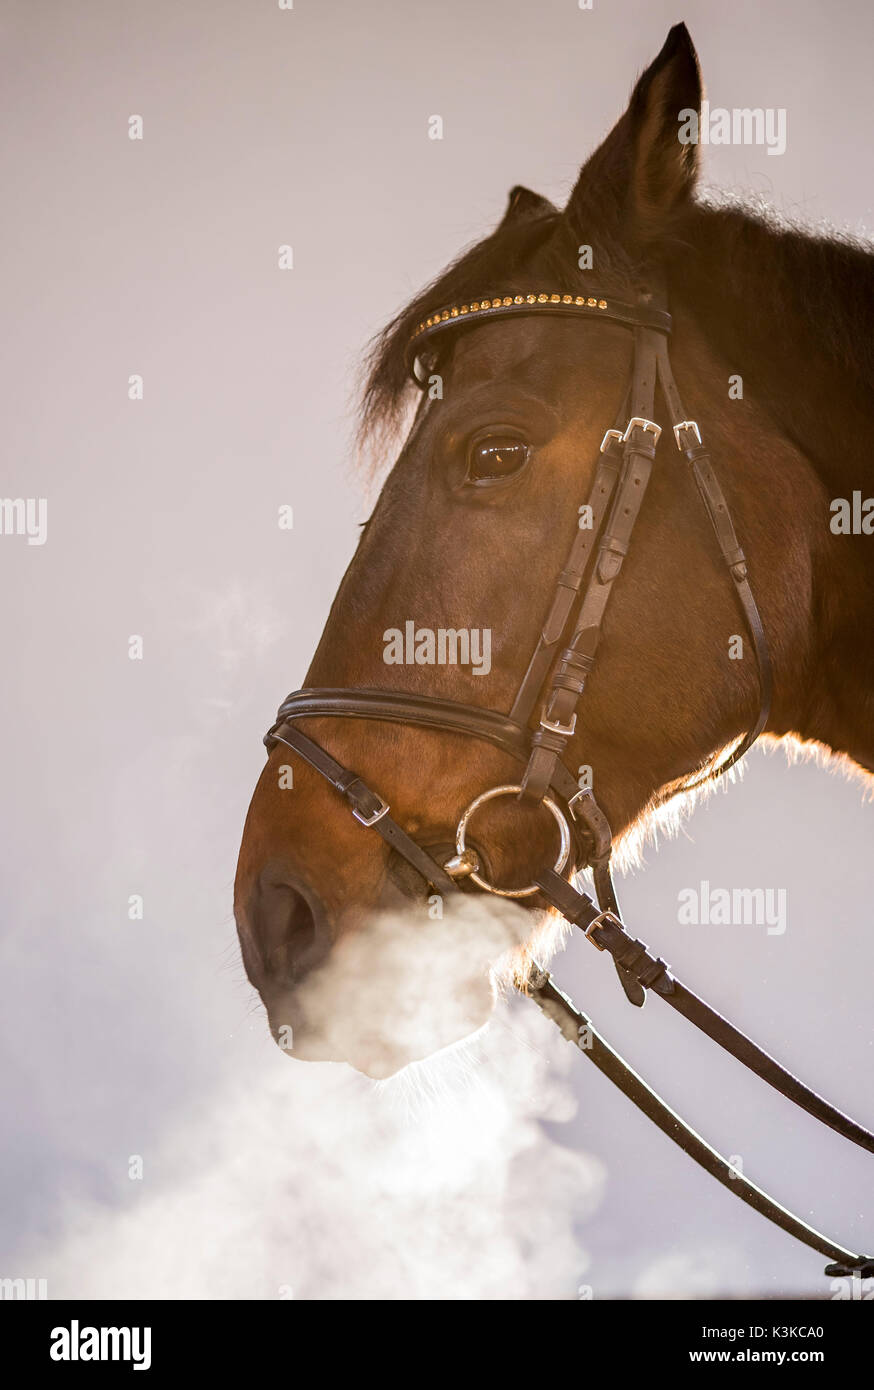 Dragon's horse. A horse in the halter blows out his foggy respiration. - Stock Image